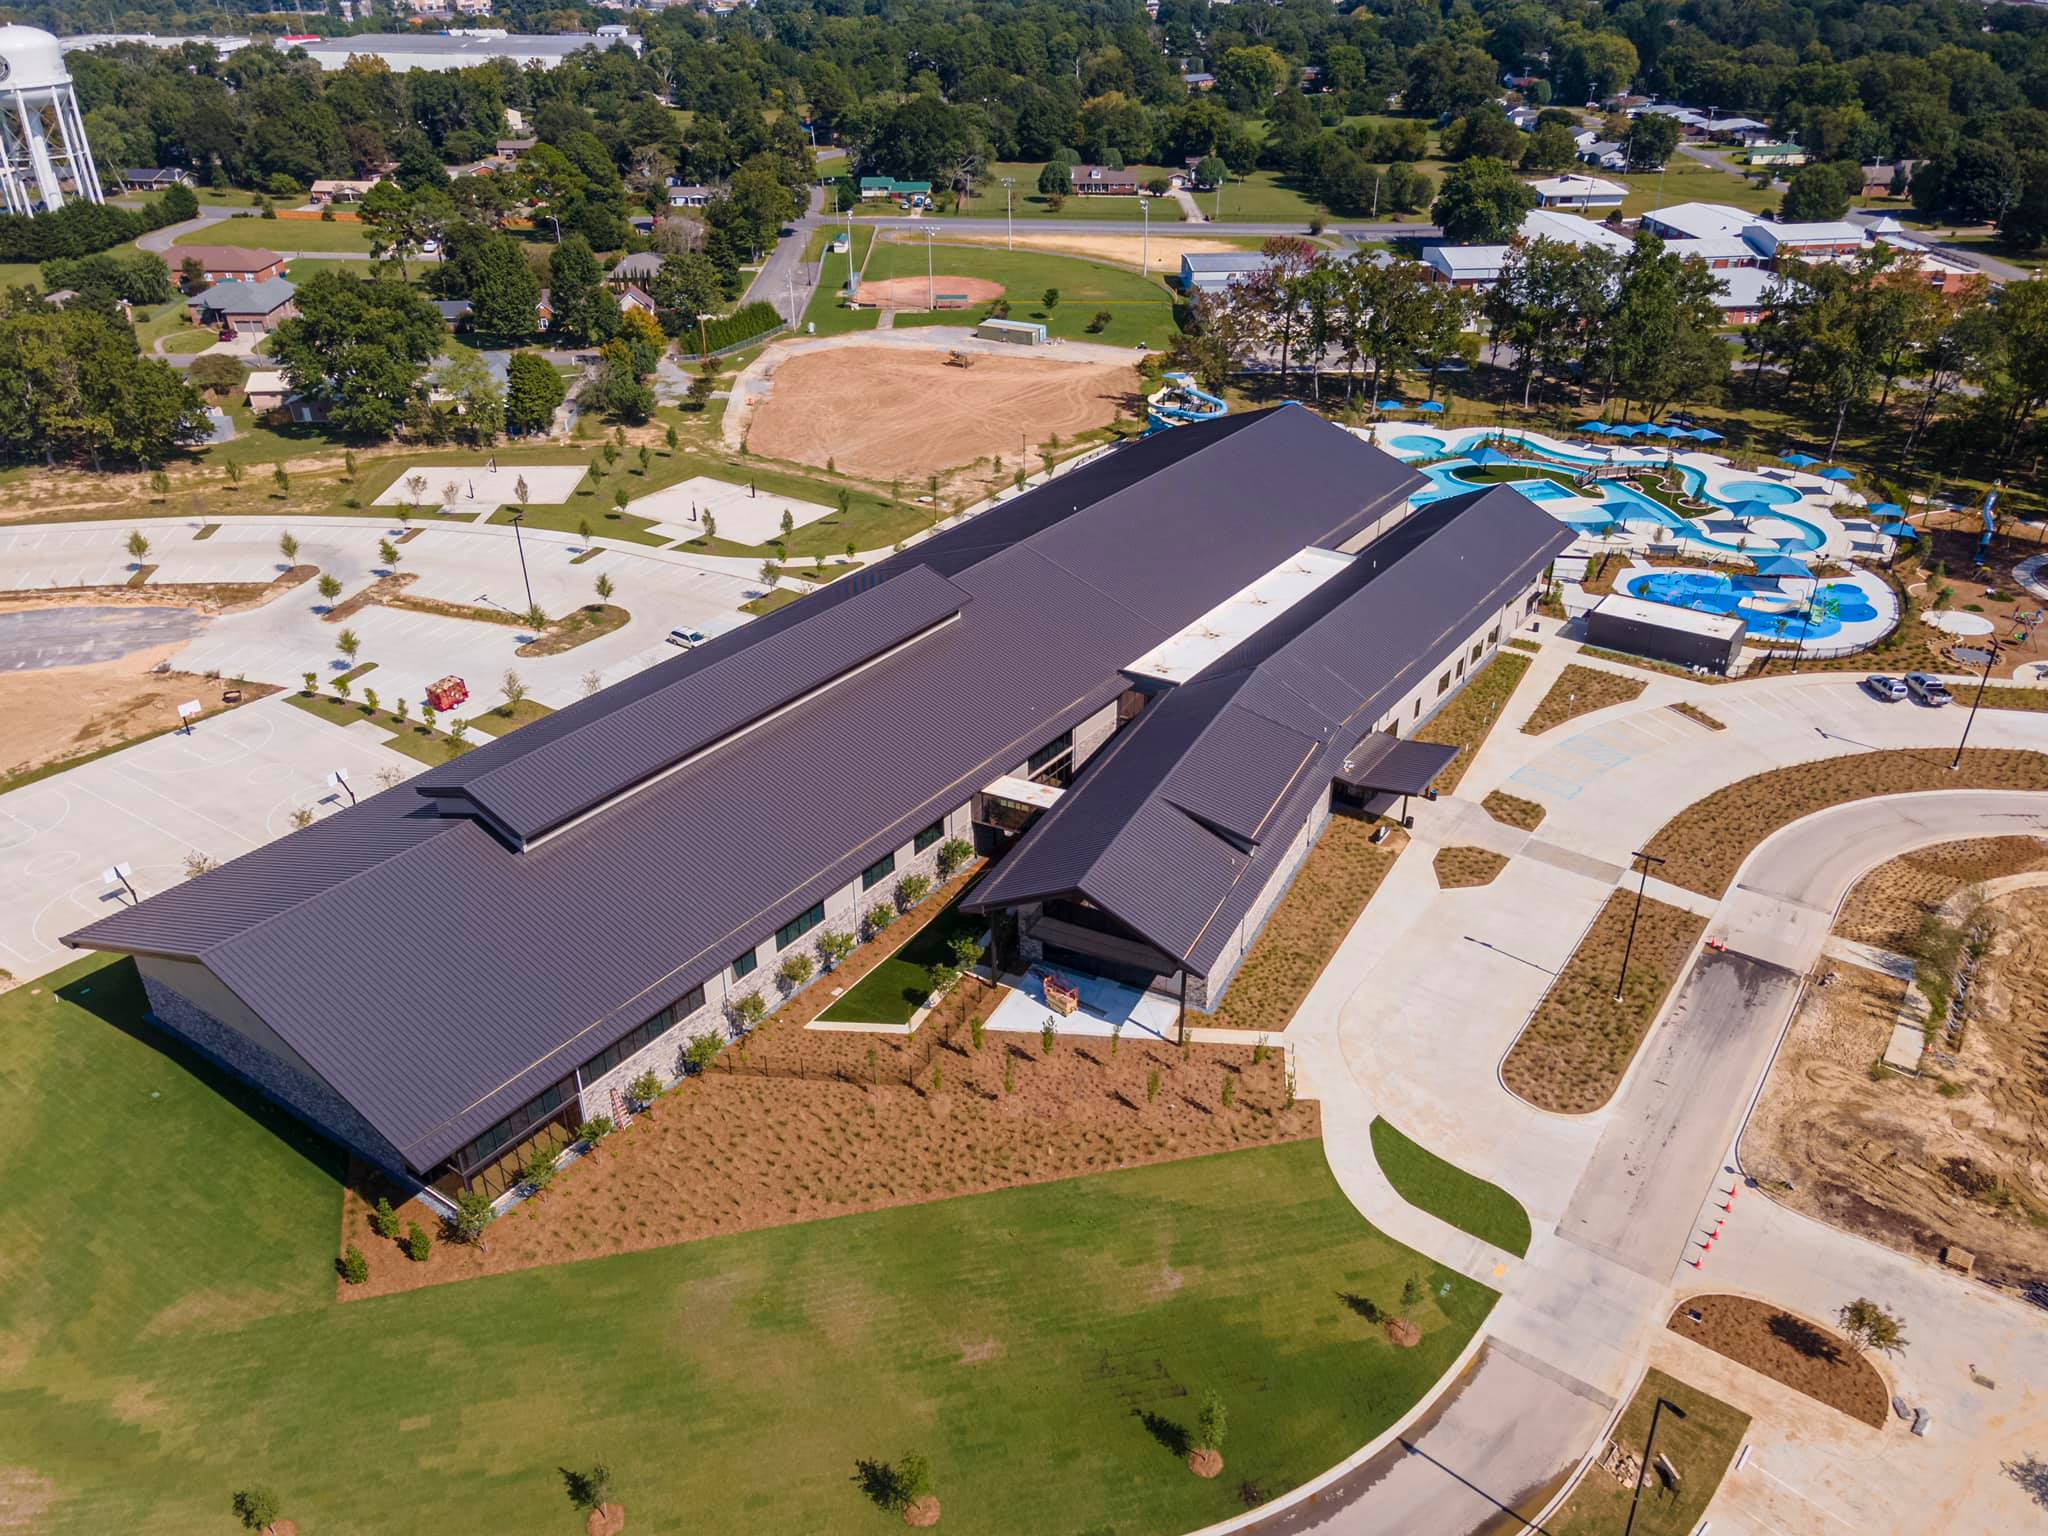 Aerial View of Fitness Center and Waterpark at Sand Mountain Park Albertville